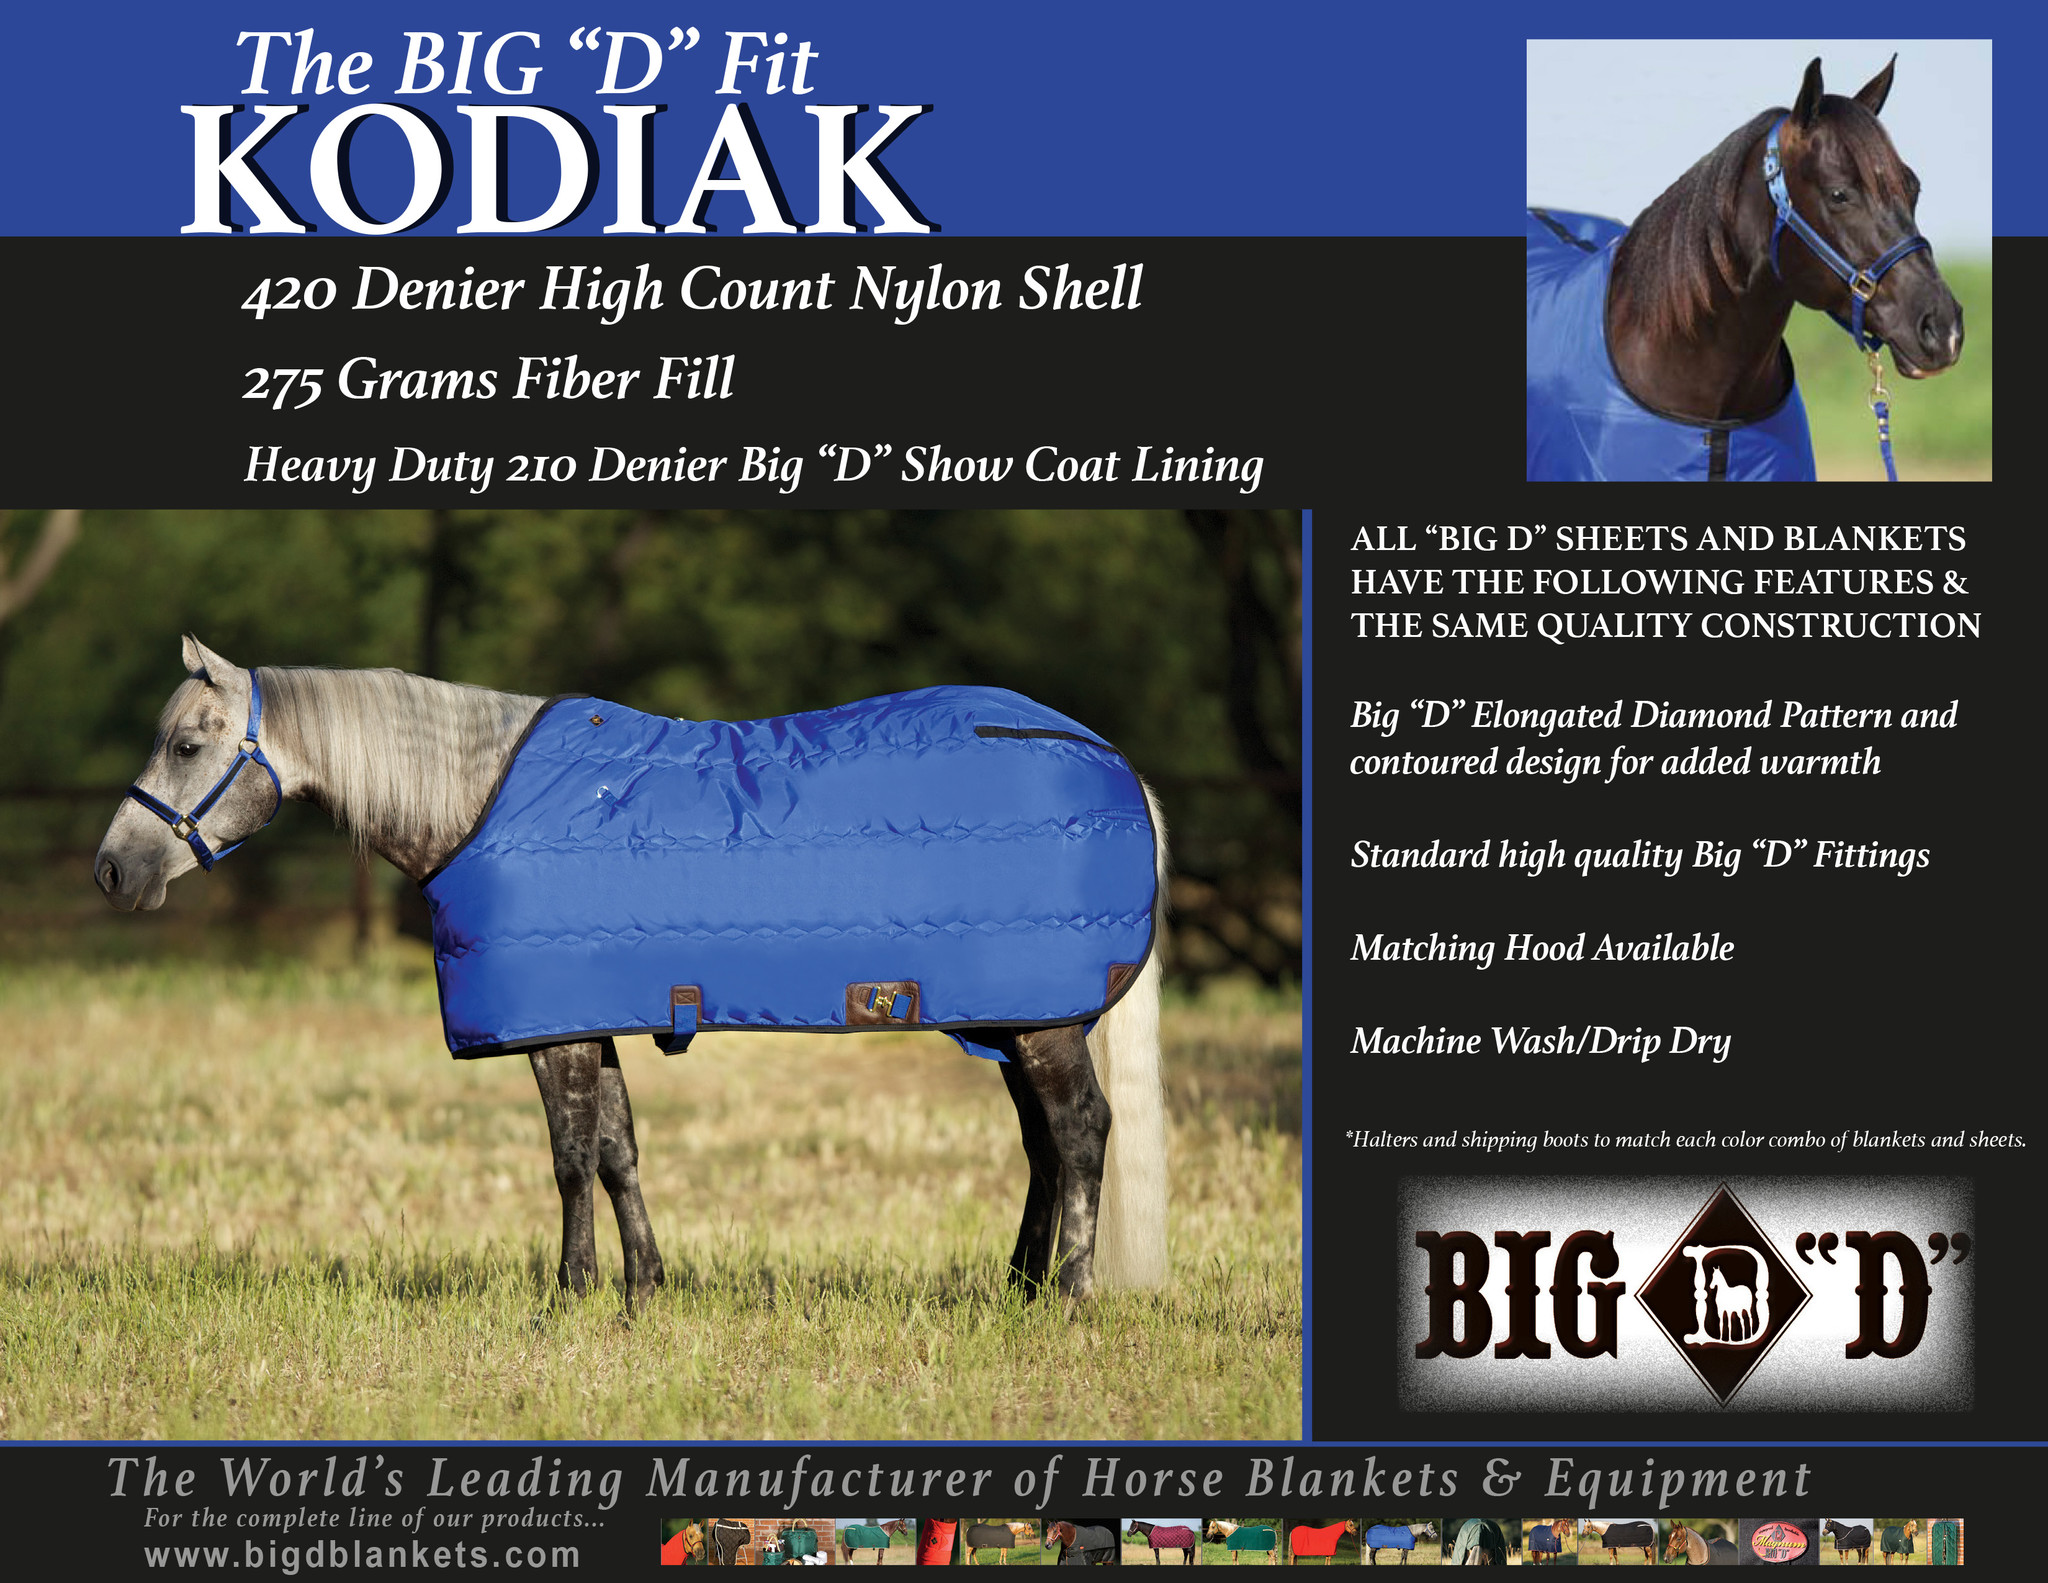 Big D Kodiak Stalldecke